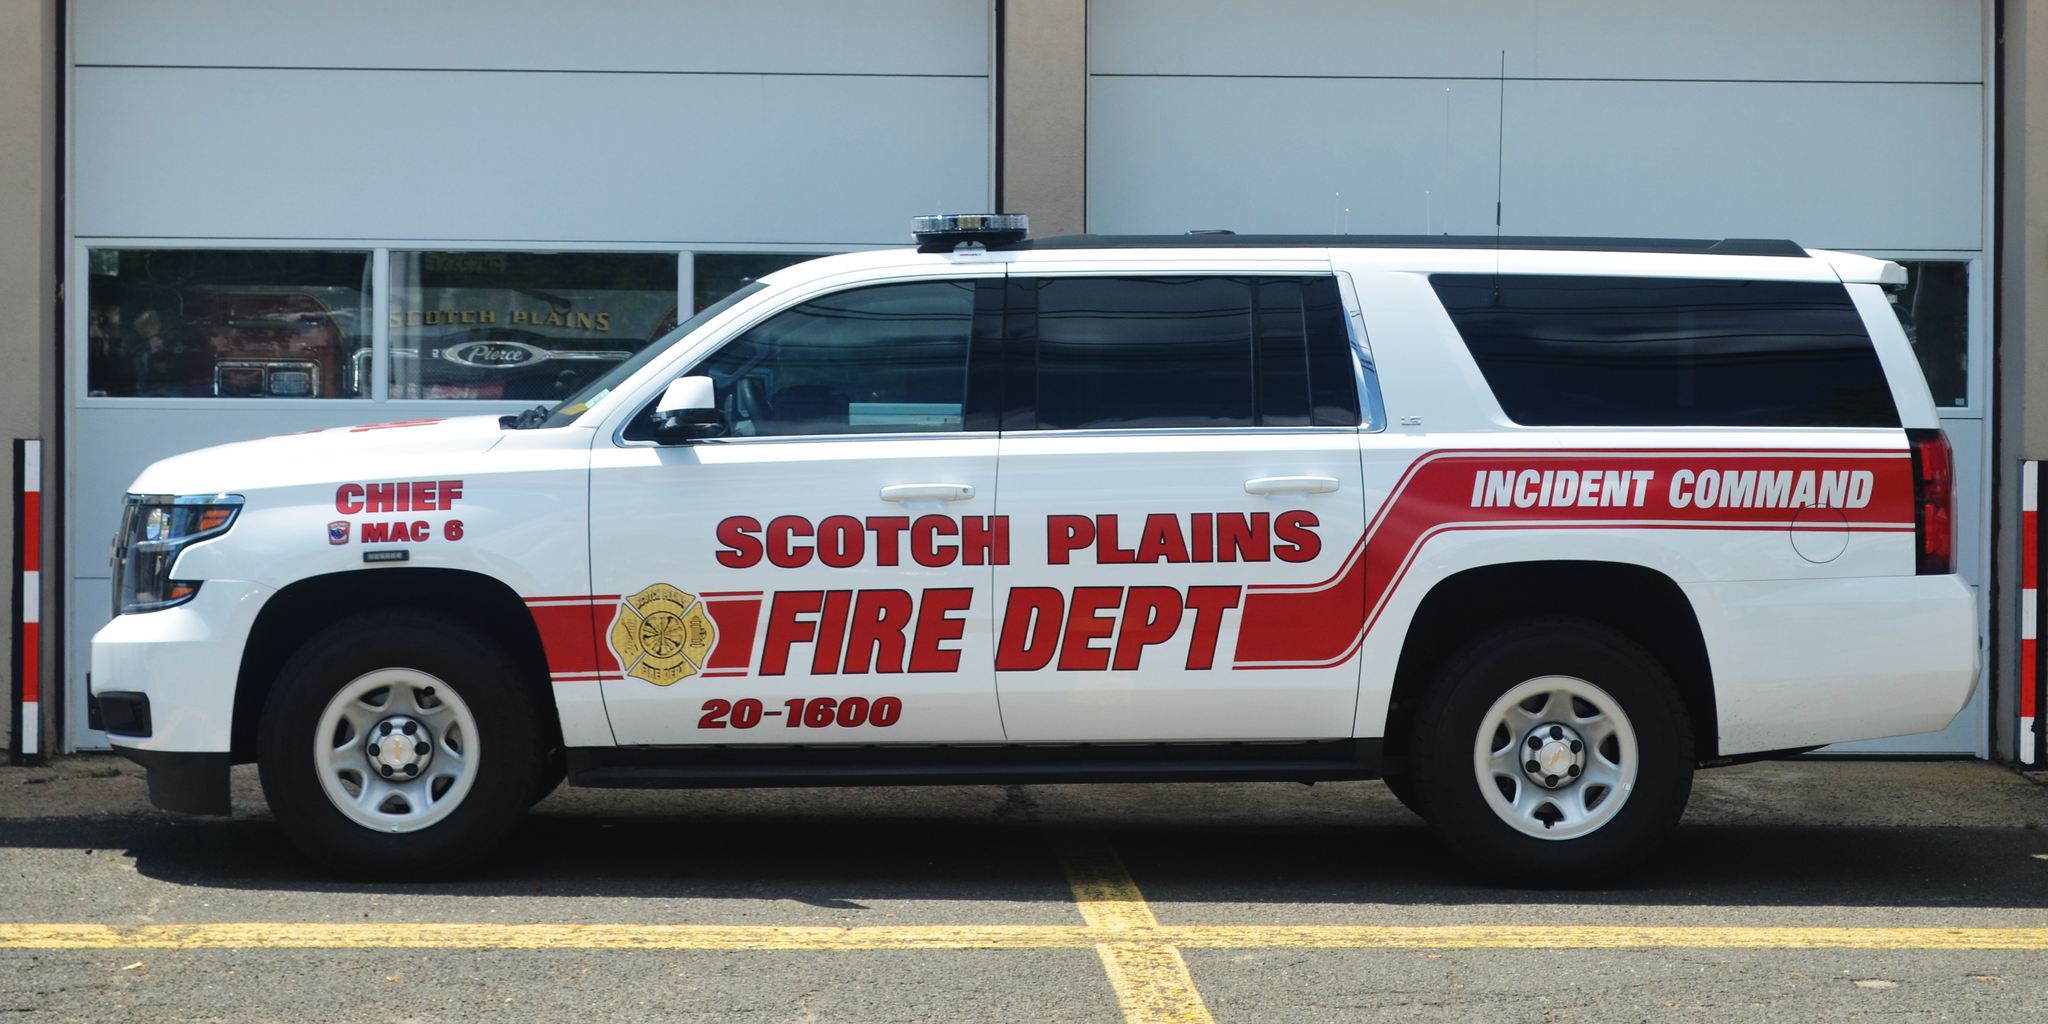 Chief's Car 1600: 2016 Chevrolet Suburban Incident Command